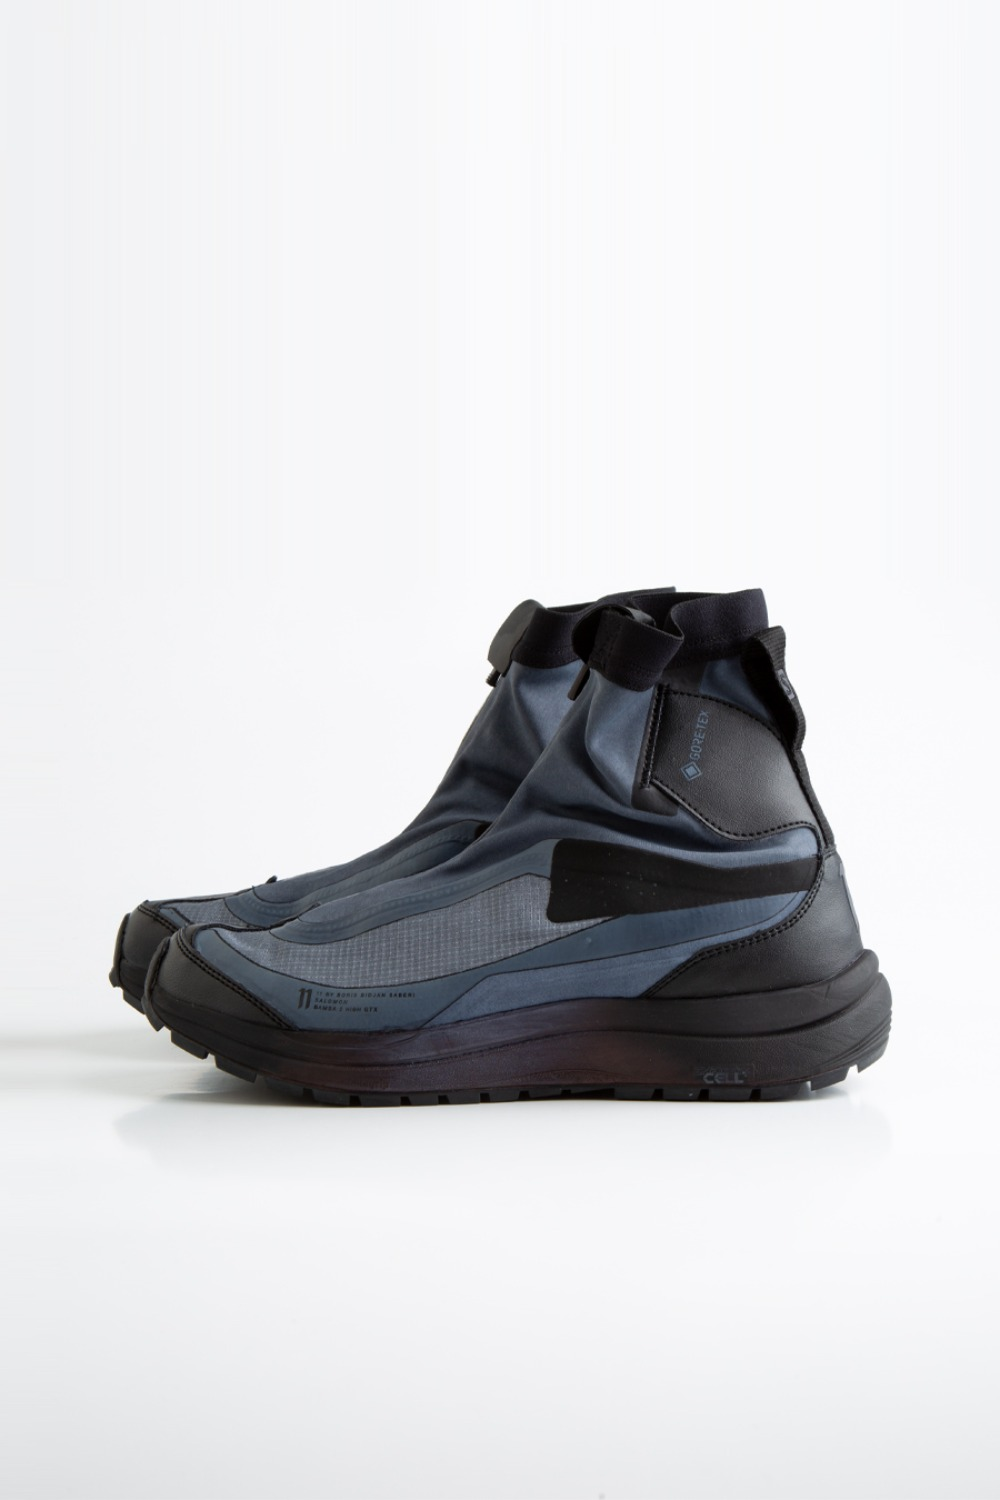 BAMBA2 HIGH GORE-TEX BLACK DYE